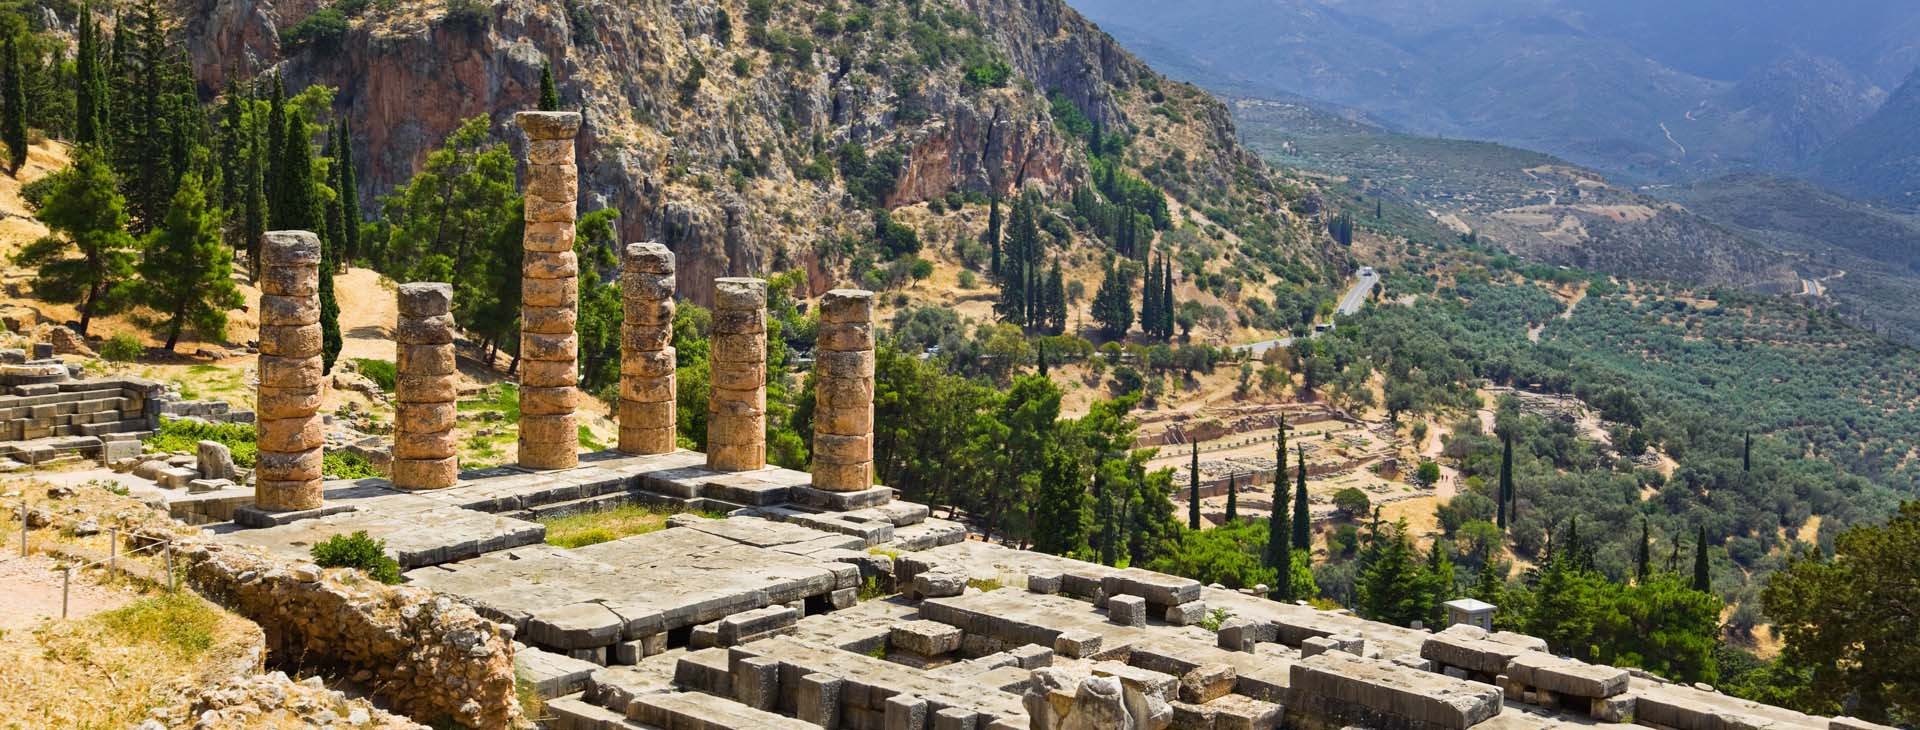 Delphi - Apollo Temple, Fokis